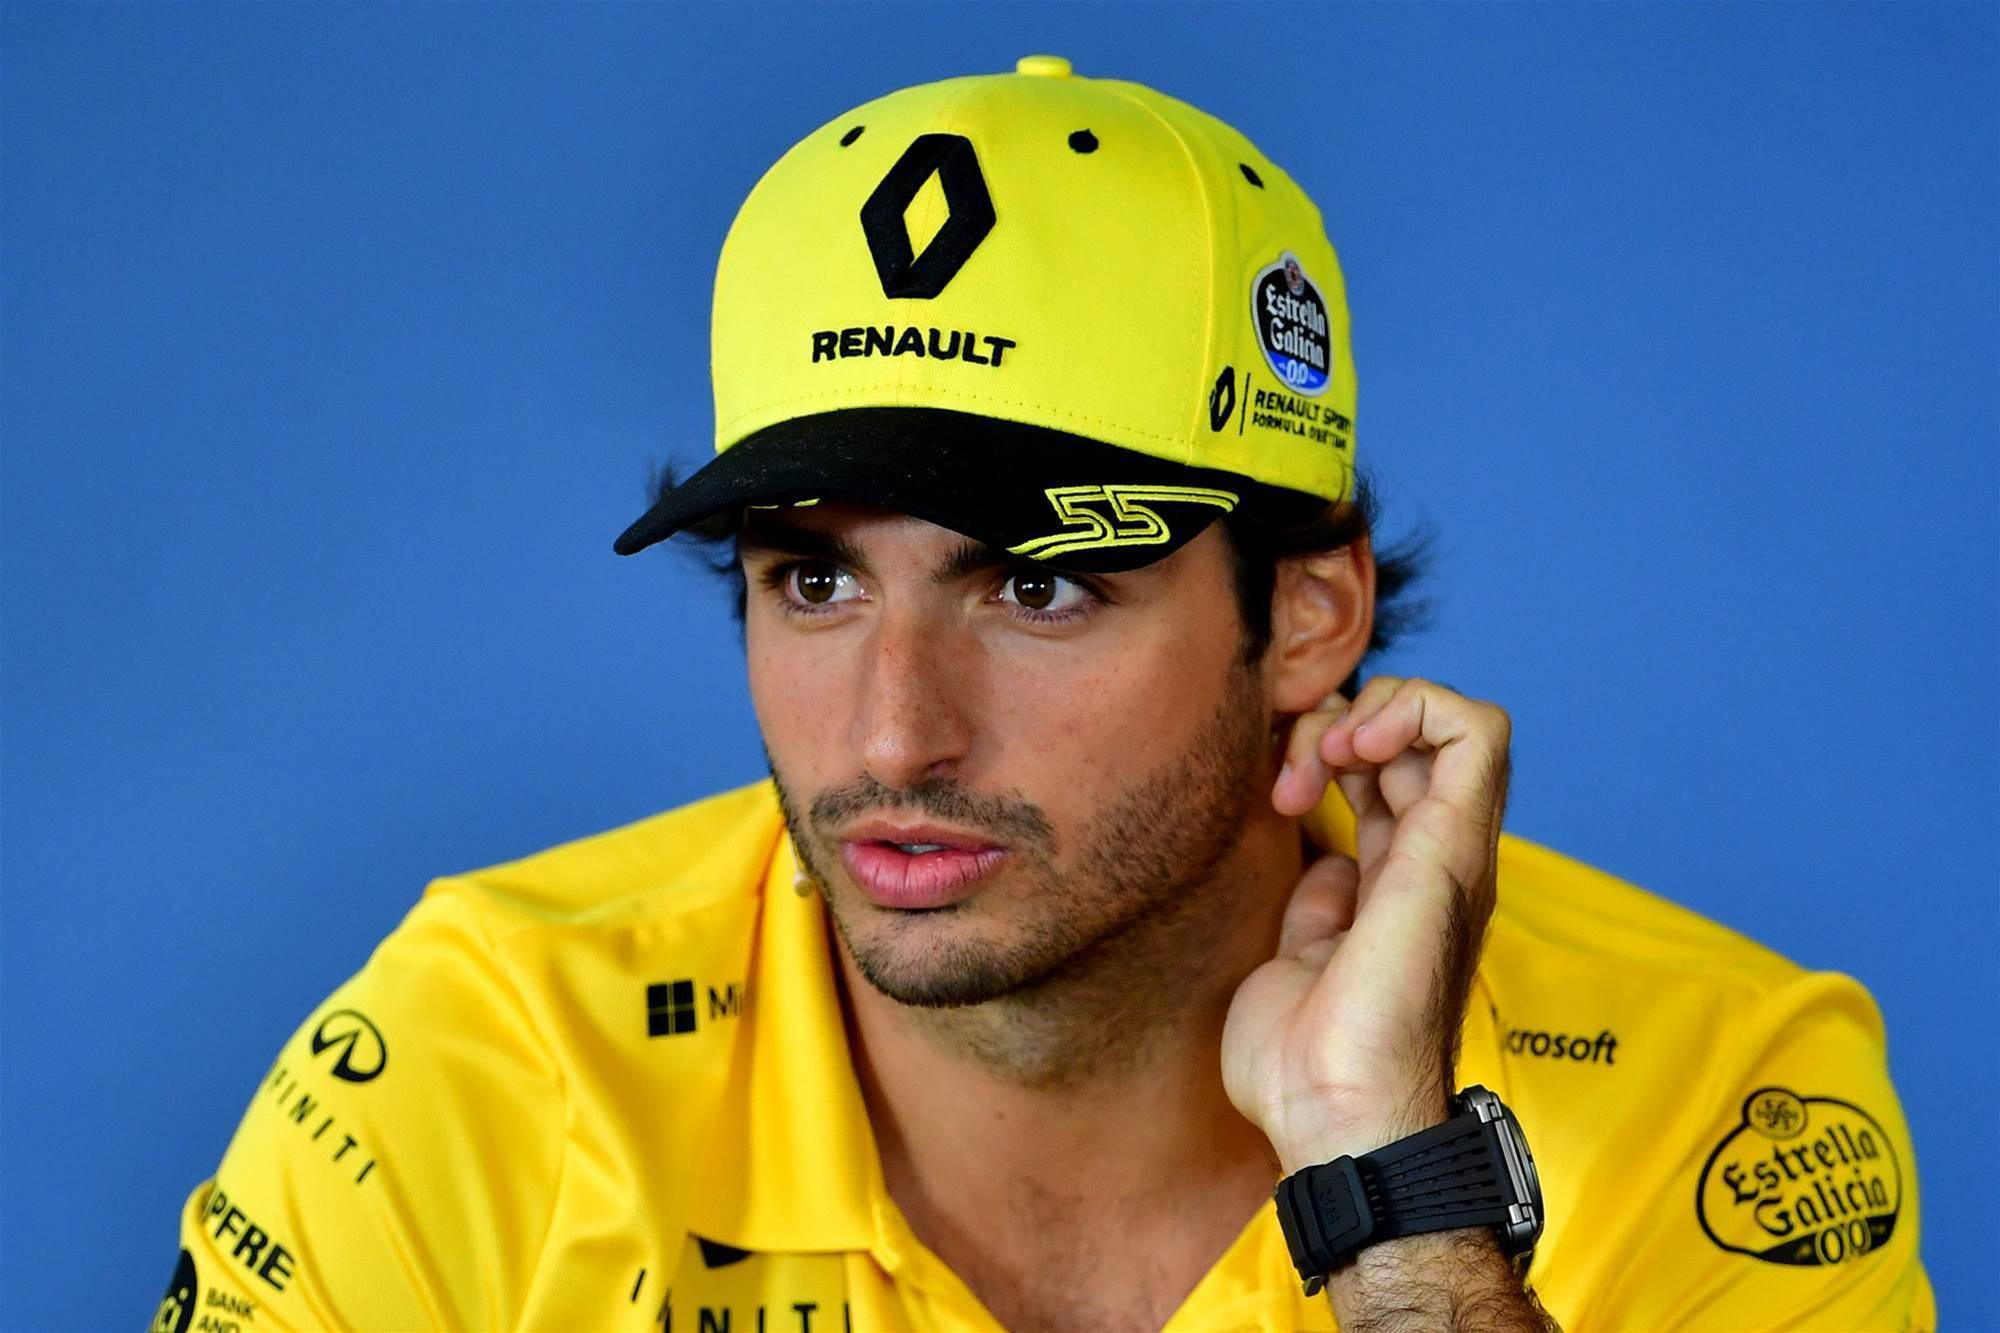 Sainz signs with McLaren